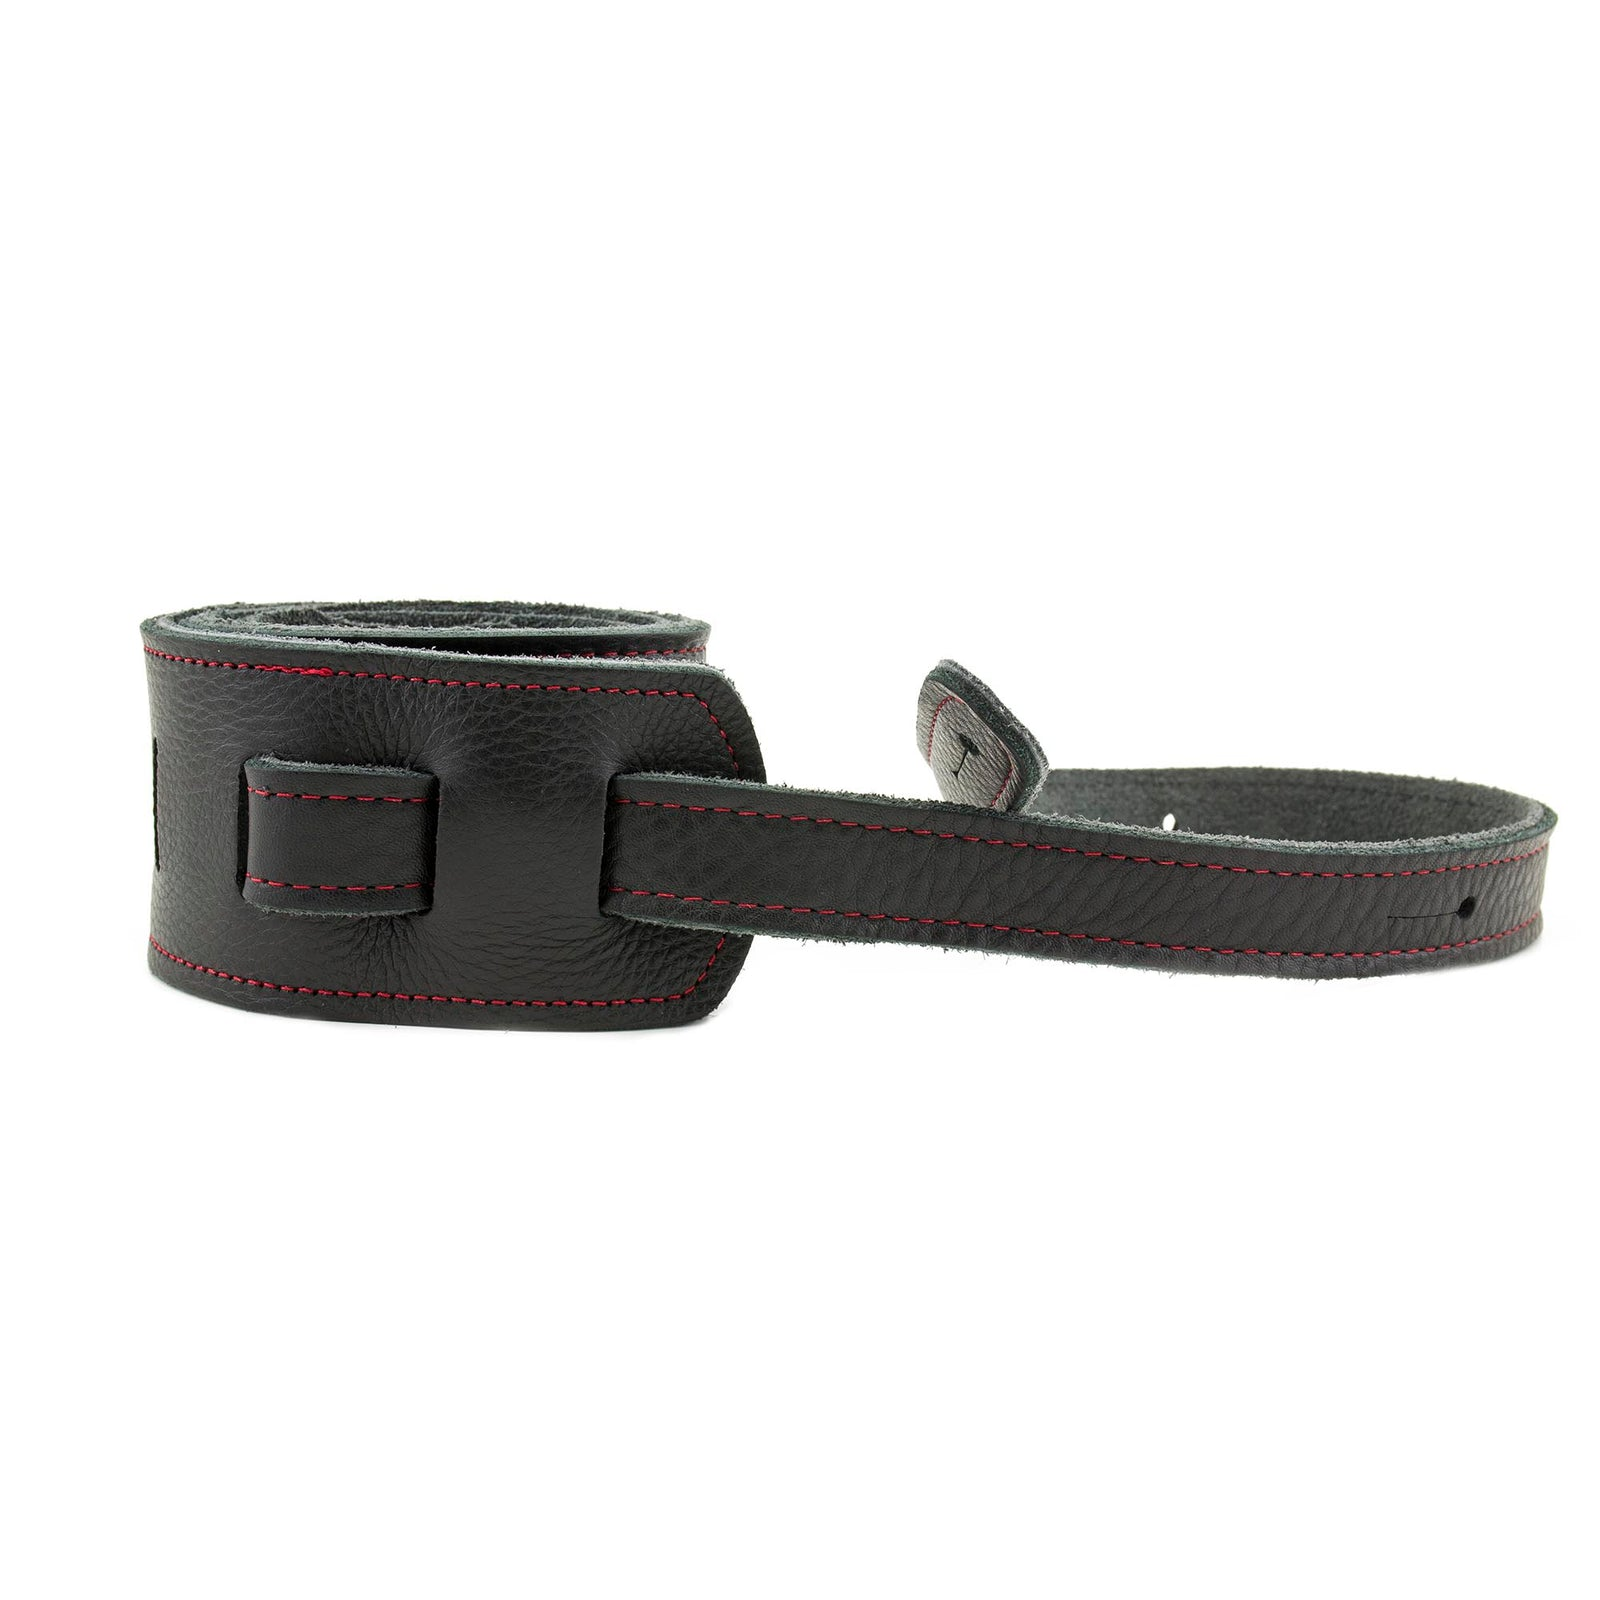 "Franklin Strap Original Black Glove Straps 2.5"" Red Stitching"